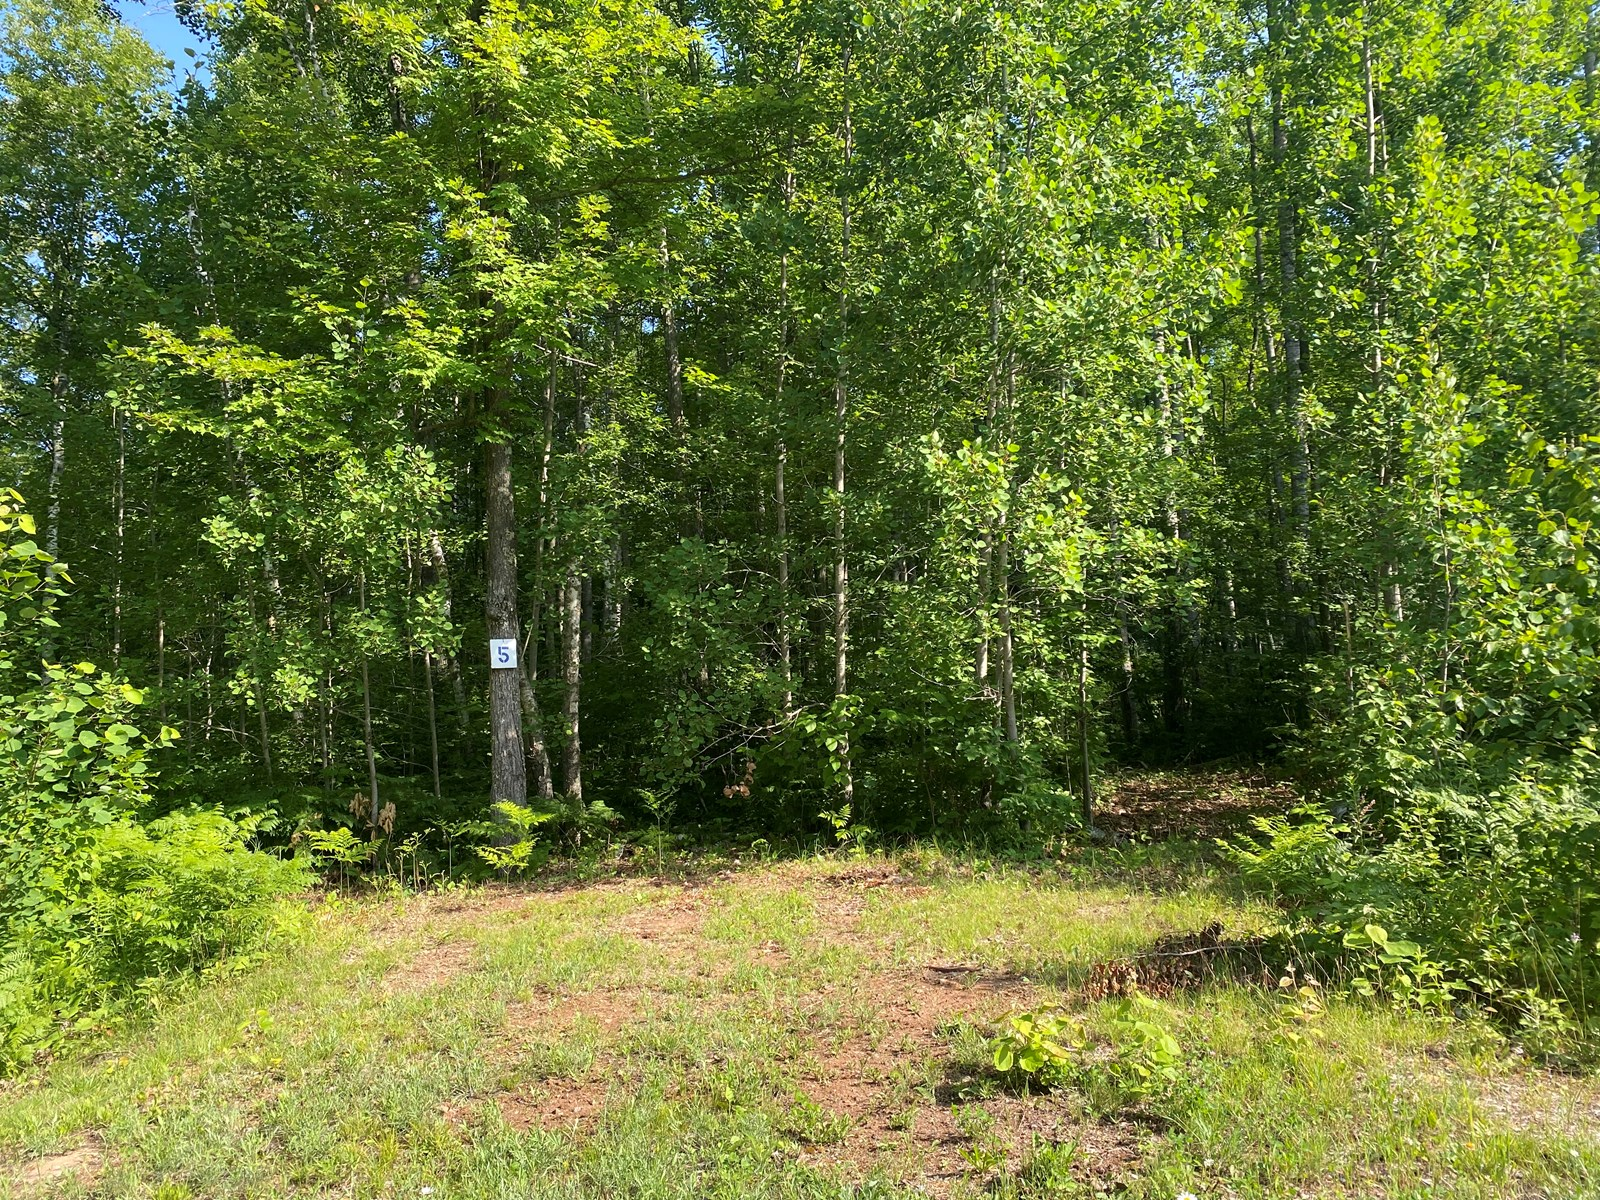 Ready-To-Build 2.66 Acre Lot For Sale In Sandstone MN